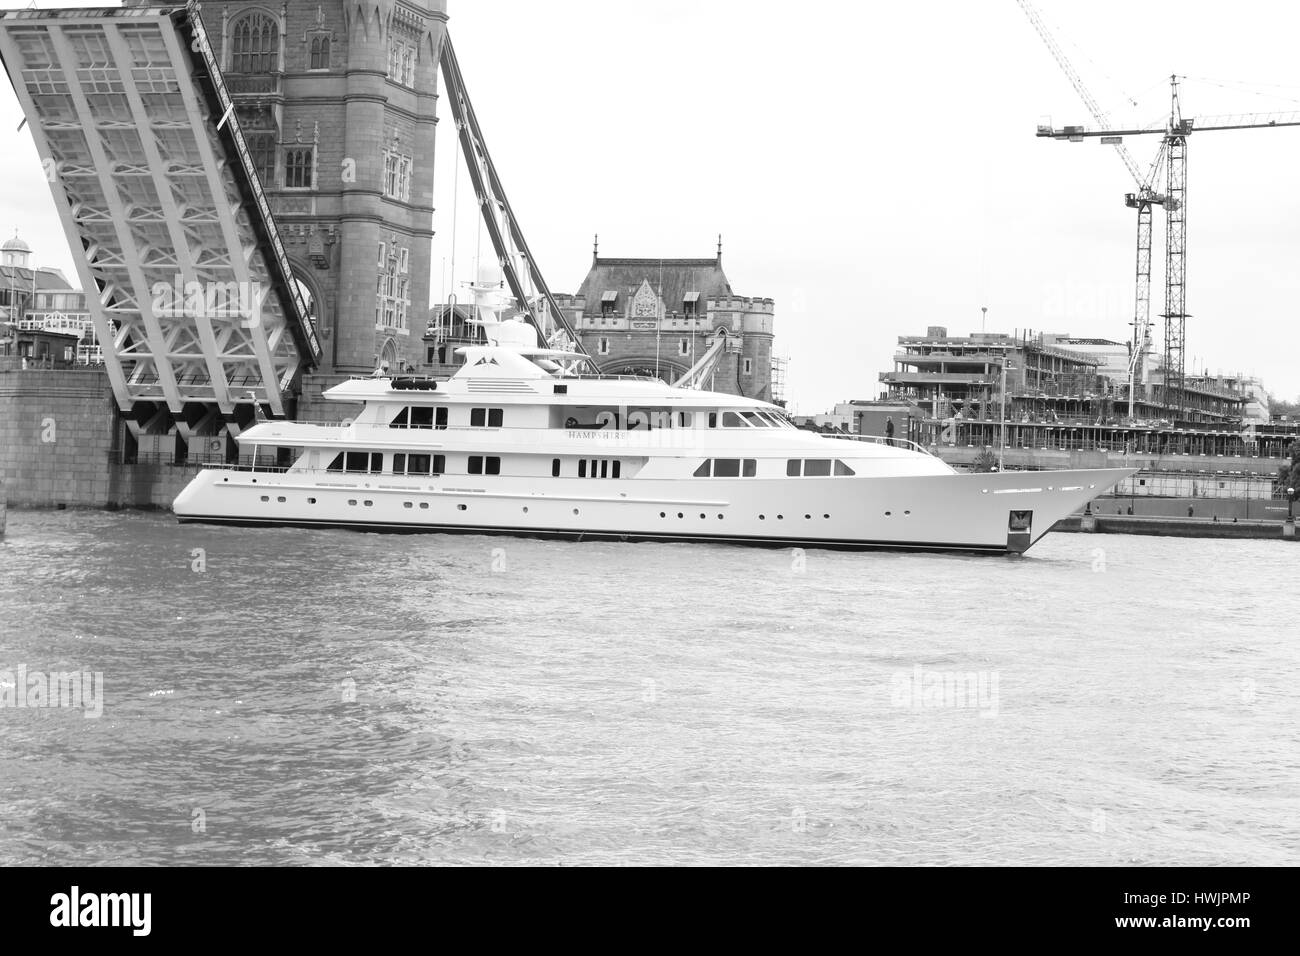 boat floating down river thames under tower bridge photographed in black and white - Stock Image